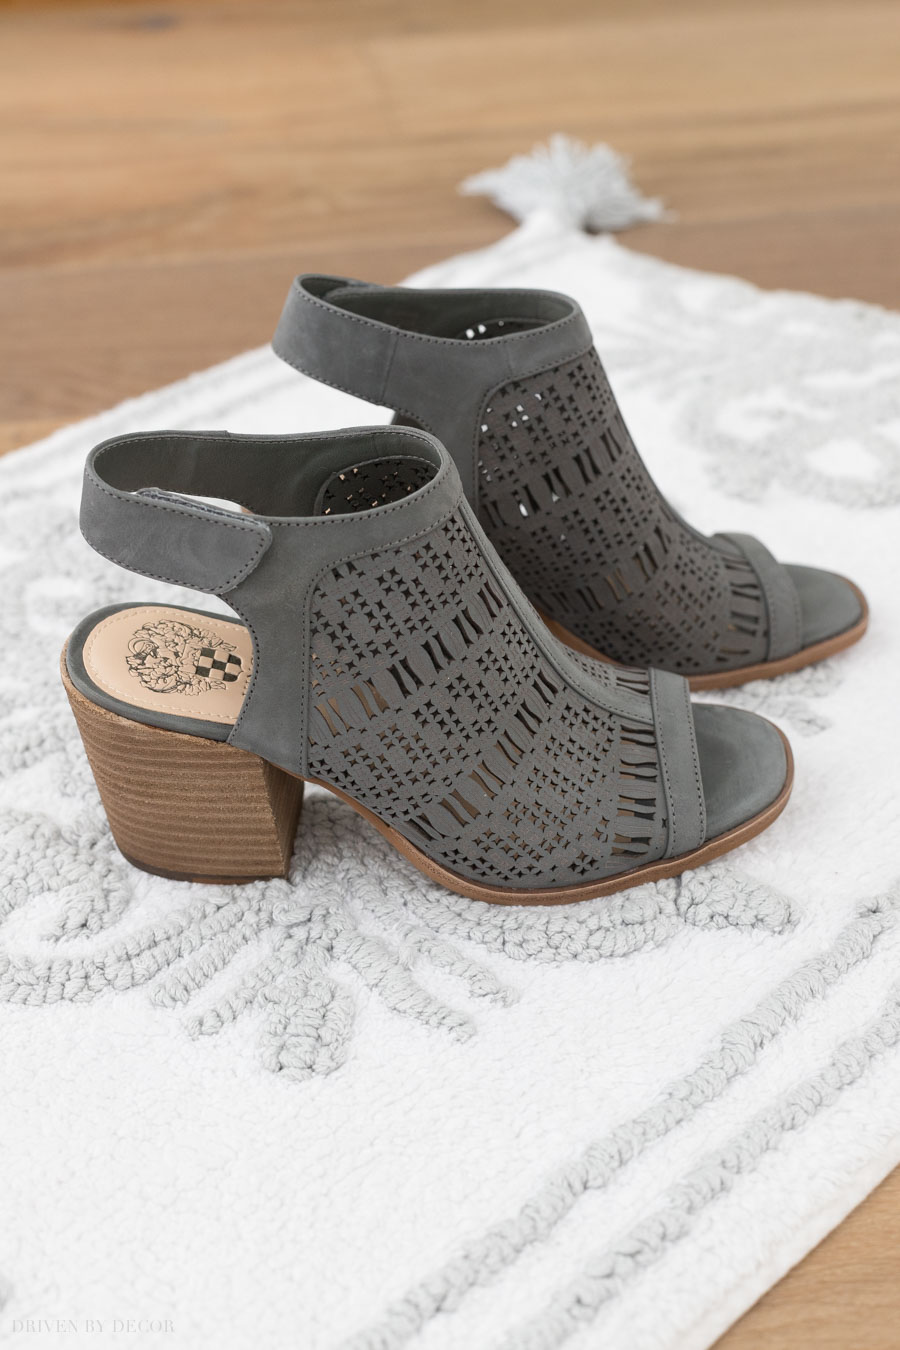 My favorite fall sandals! Love the deep gray color and heel height!